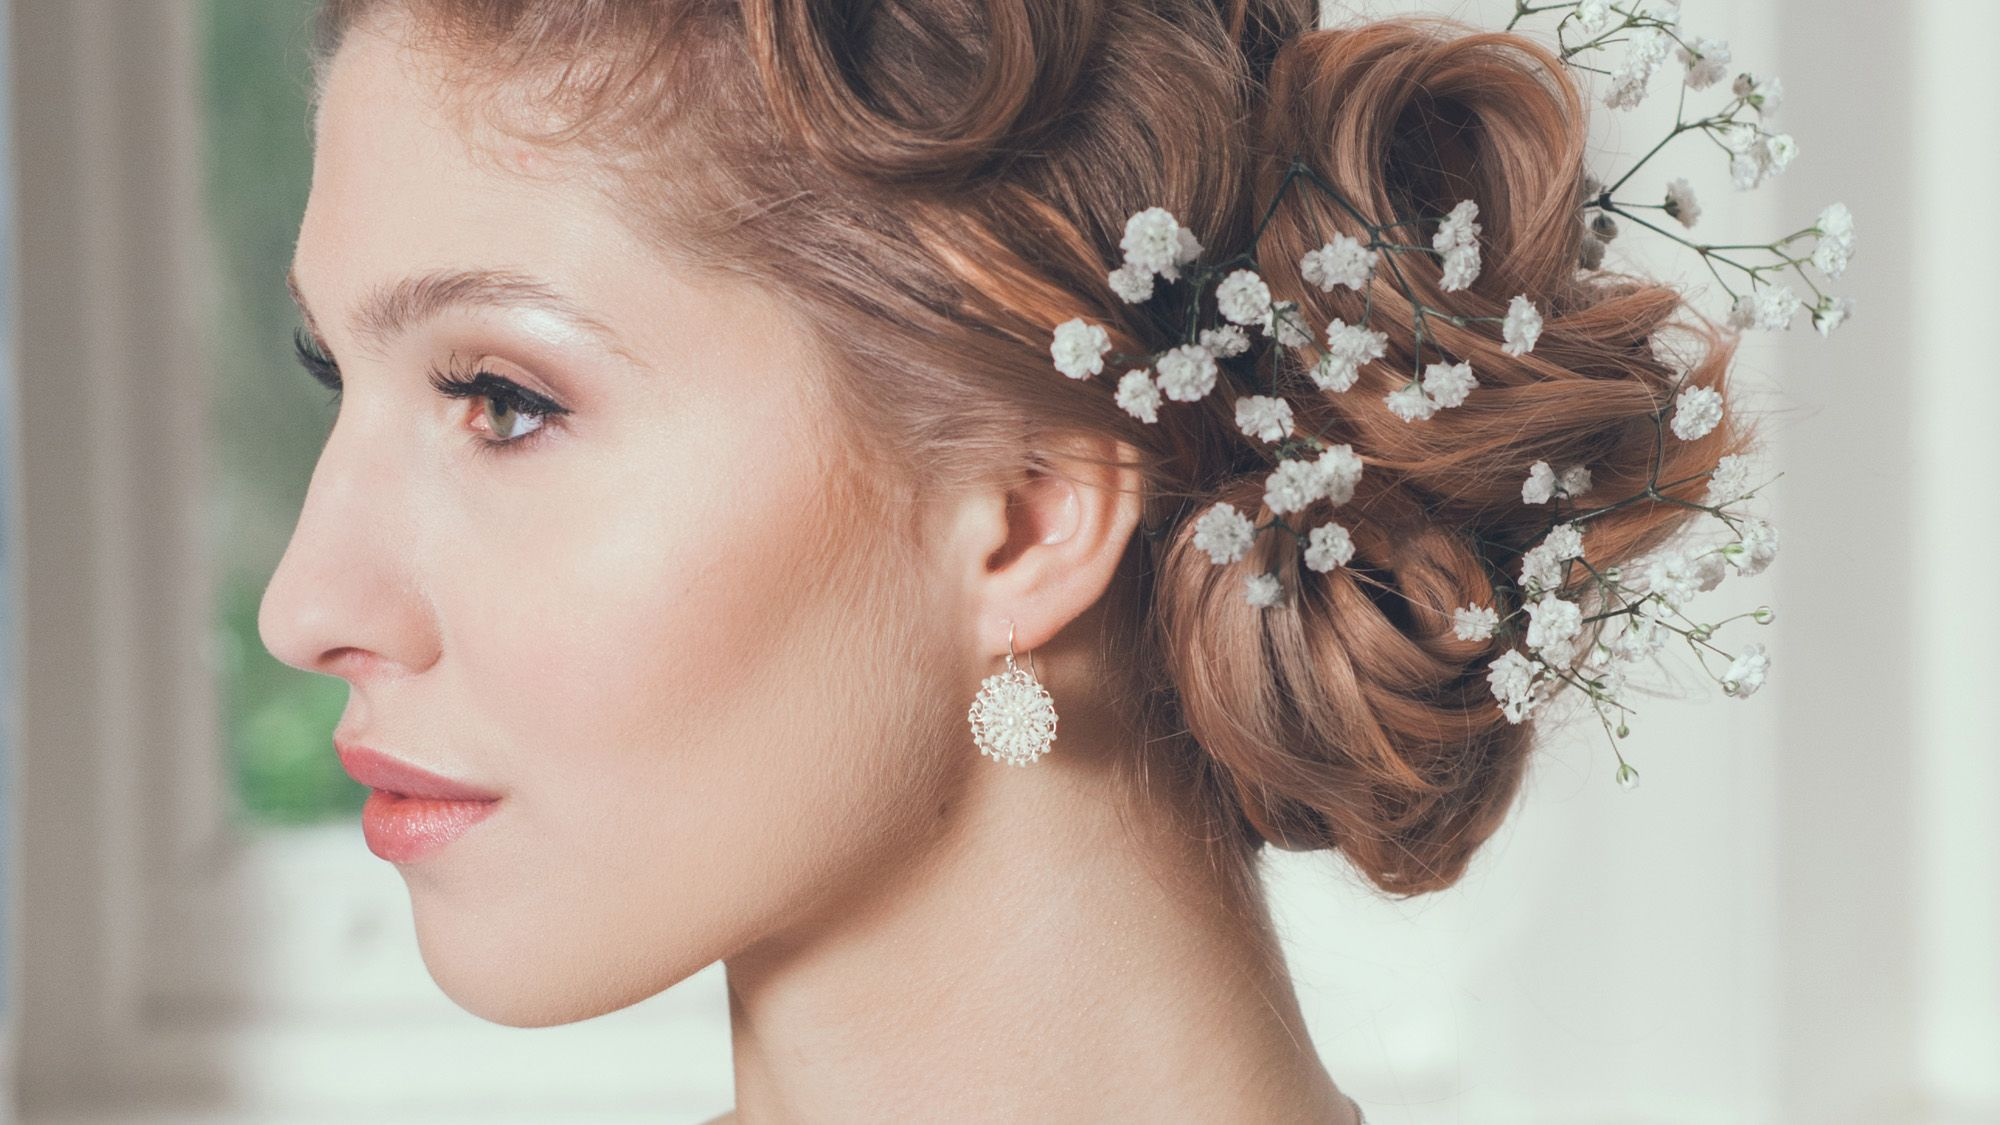 Bridal accessories and jewellery made with silver lace and pearls